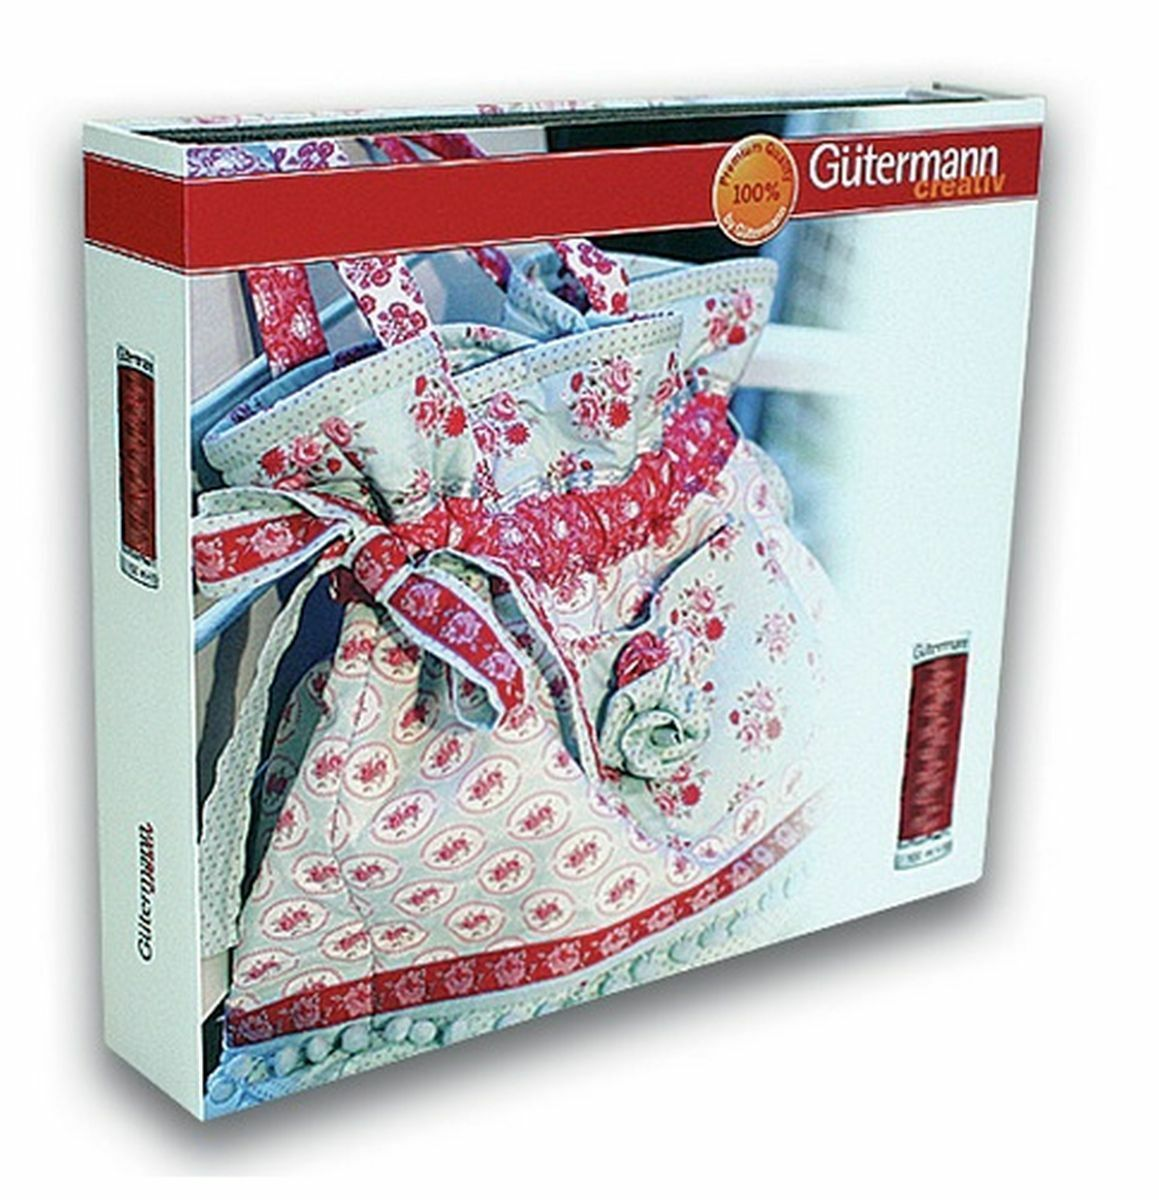 Gutermann Sewing Sew All Thread Notebook 42 x 100m Reels